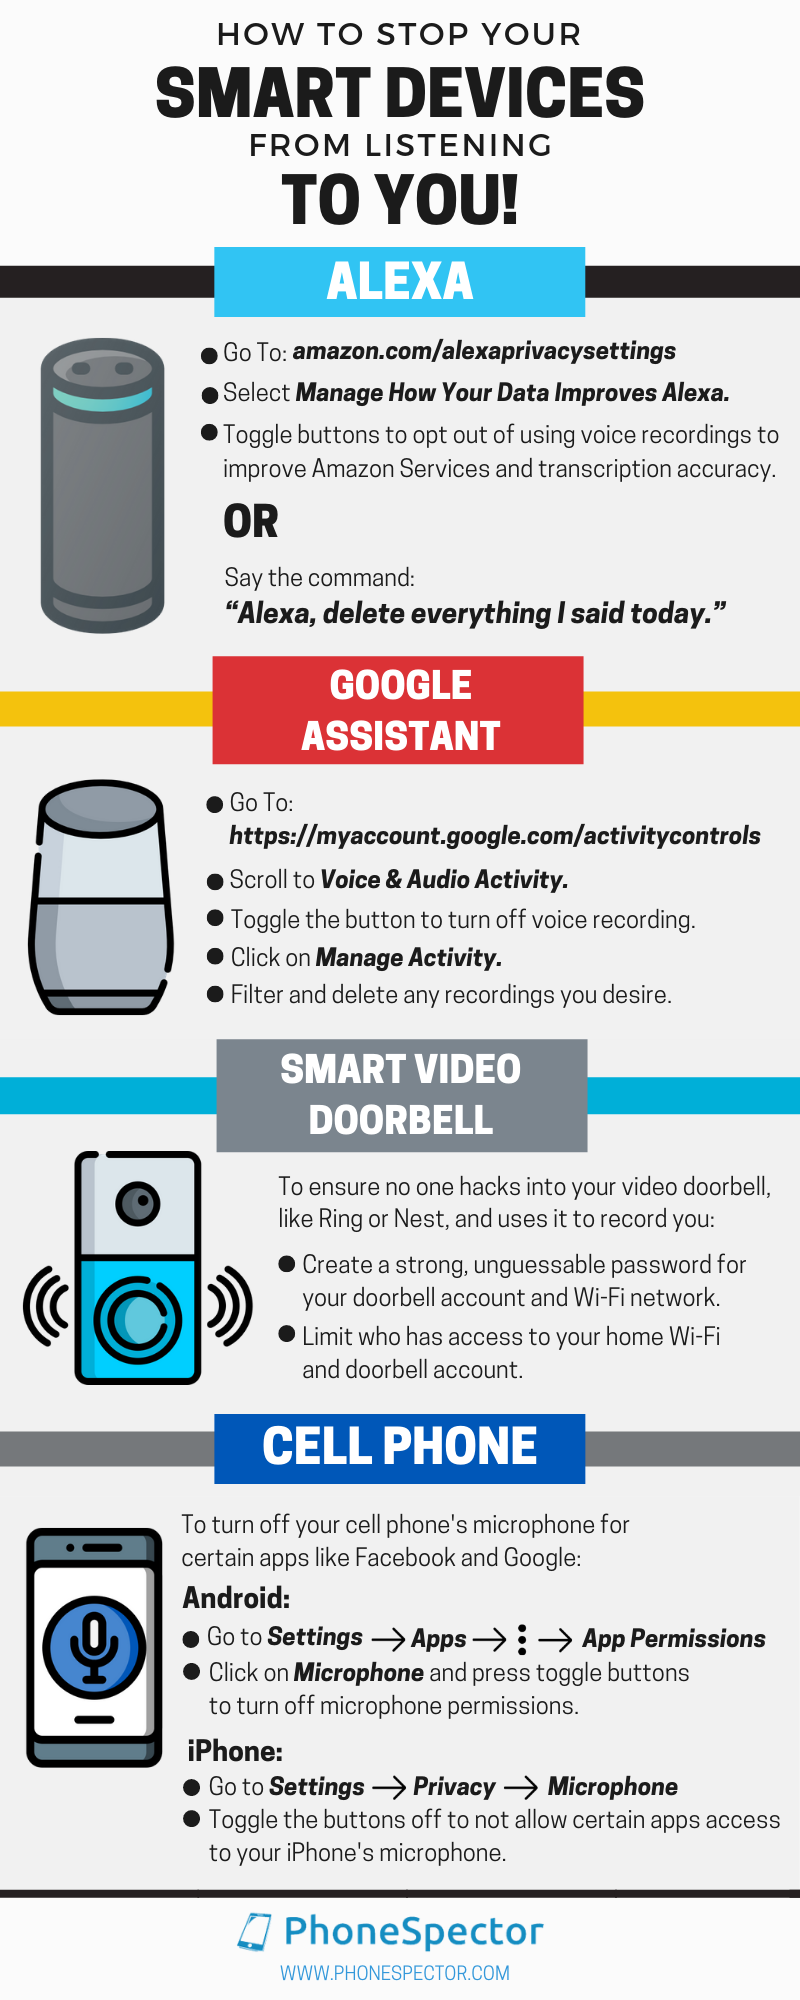 How To Stop Your Smart Devices From Listening To You